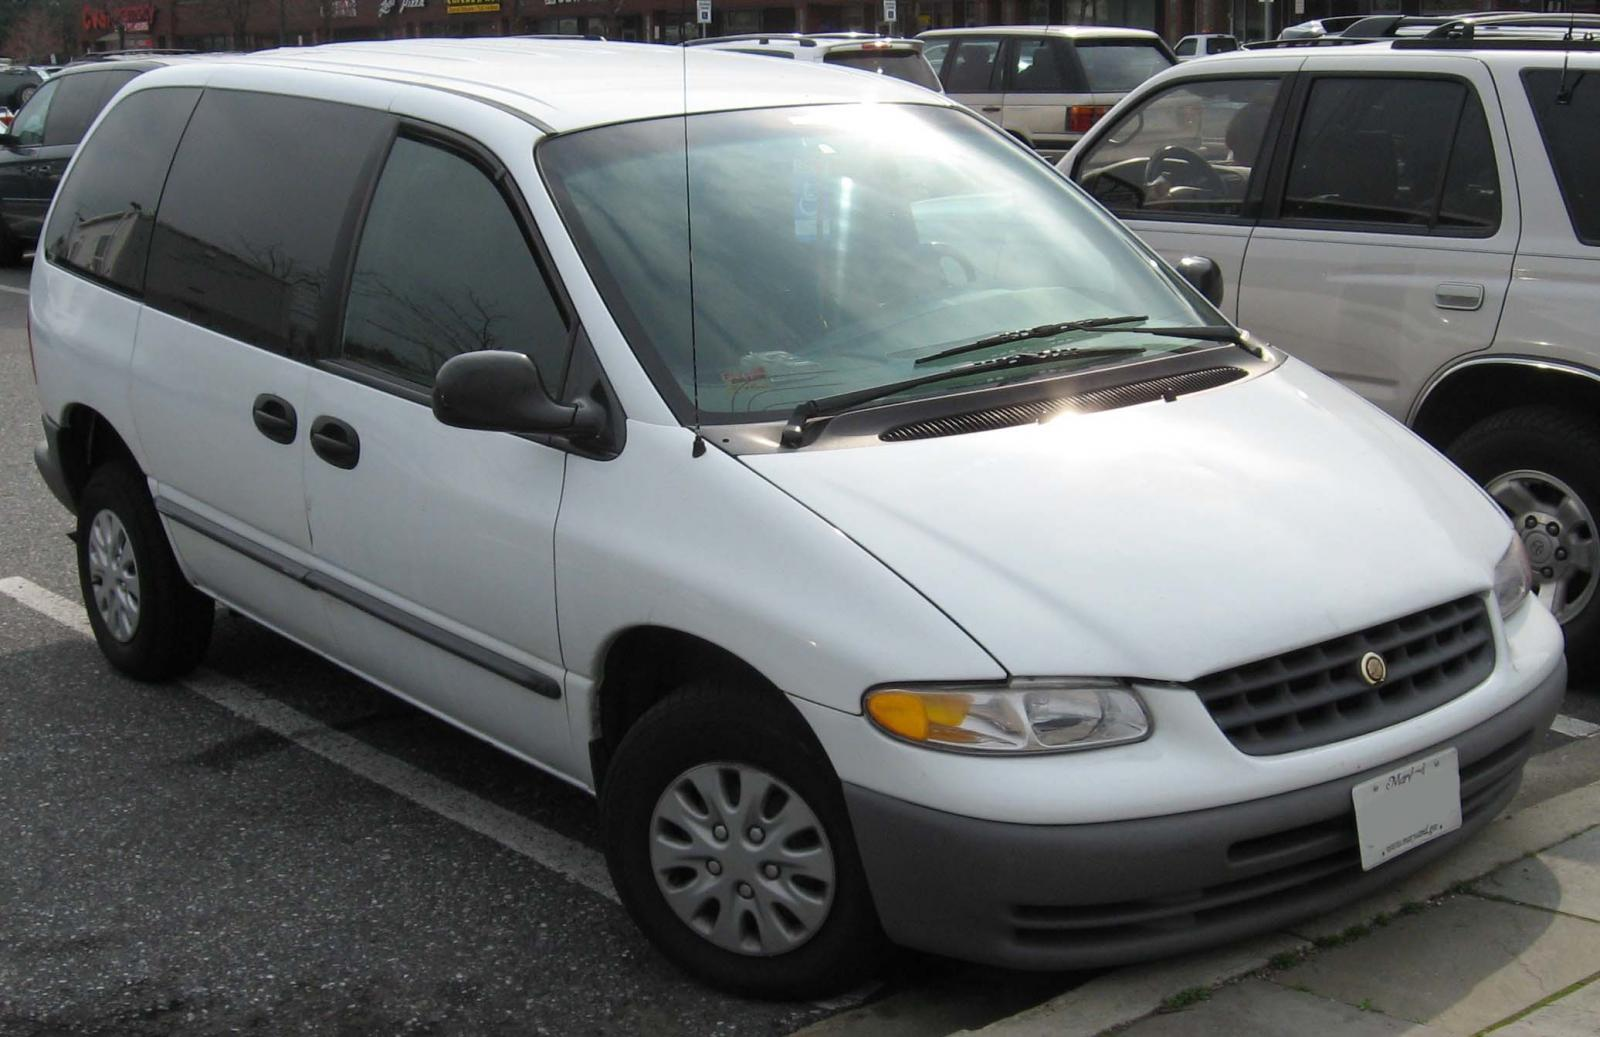 chrysler voyager 2000 - photo #28